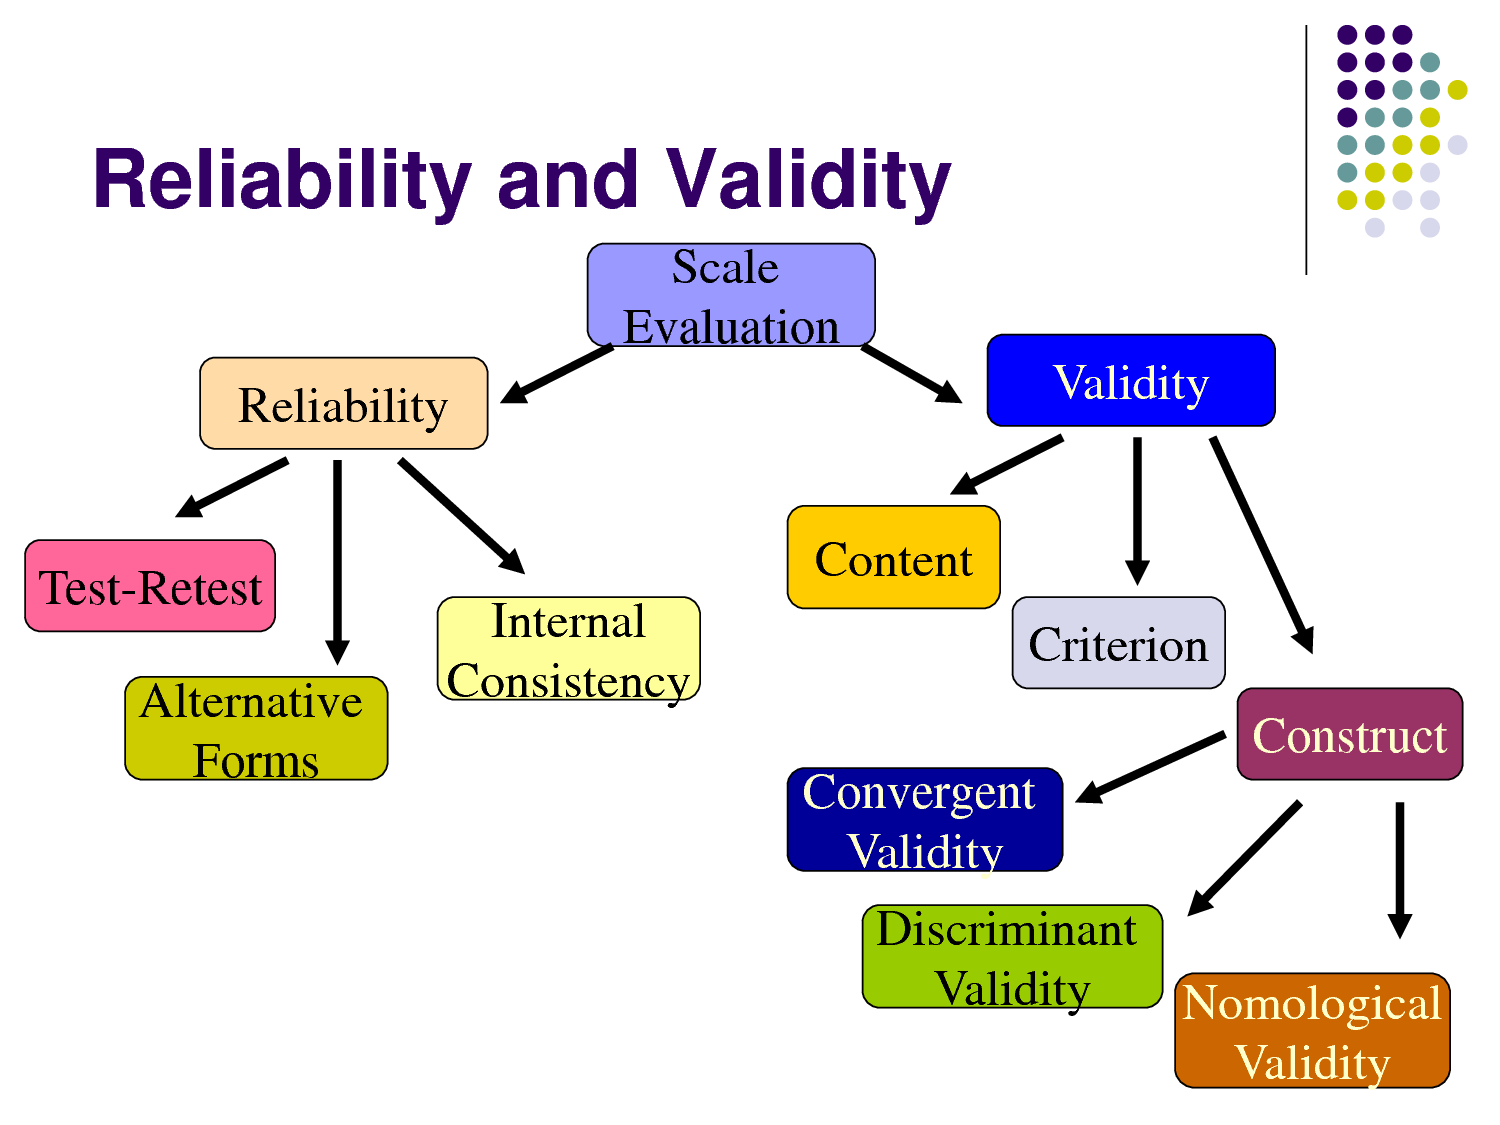 reliability and validity in research Reliability is easier to determine, because validity has more analysis just to know how valid a thing is 3 reliability is determined by tests and internal consistency, while validity has four types, which are the conclusion, internal validity, construct validity, and external validity.